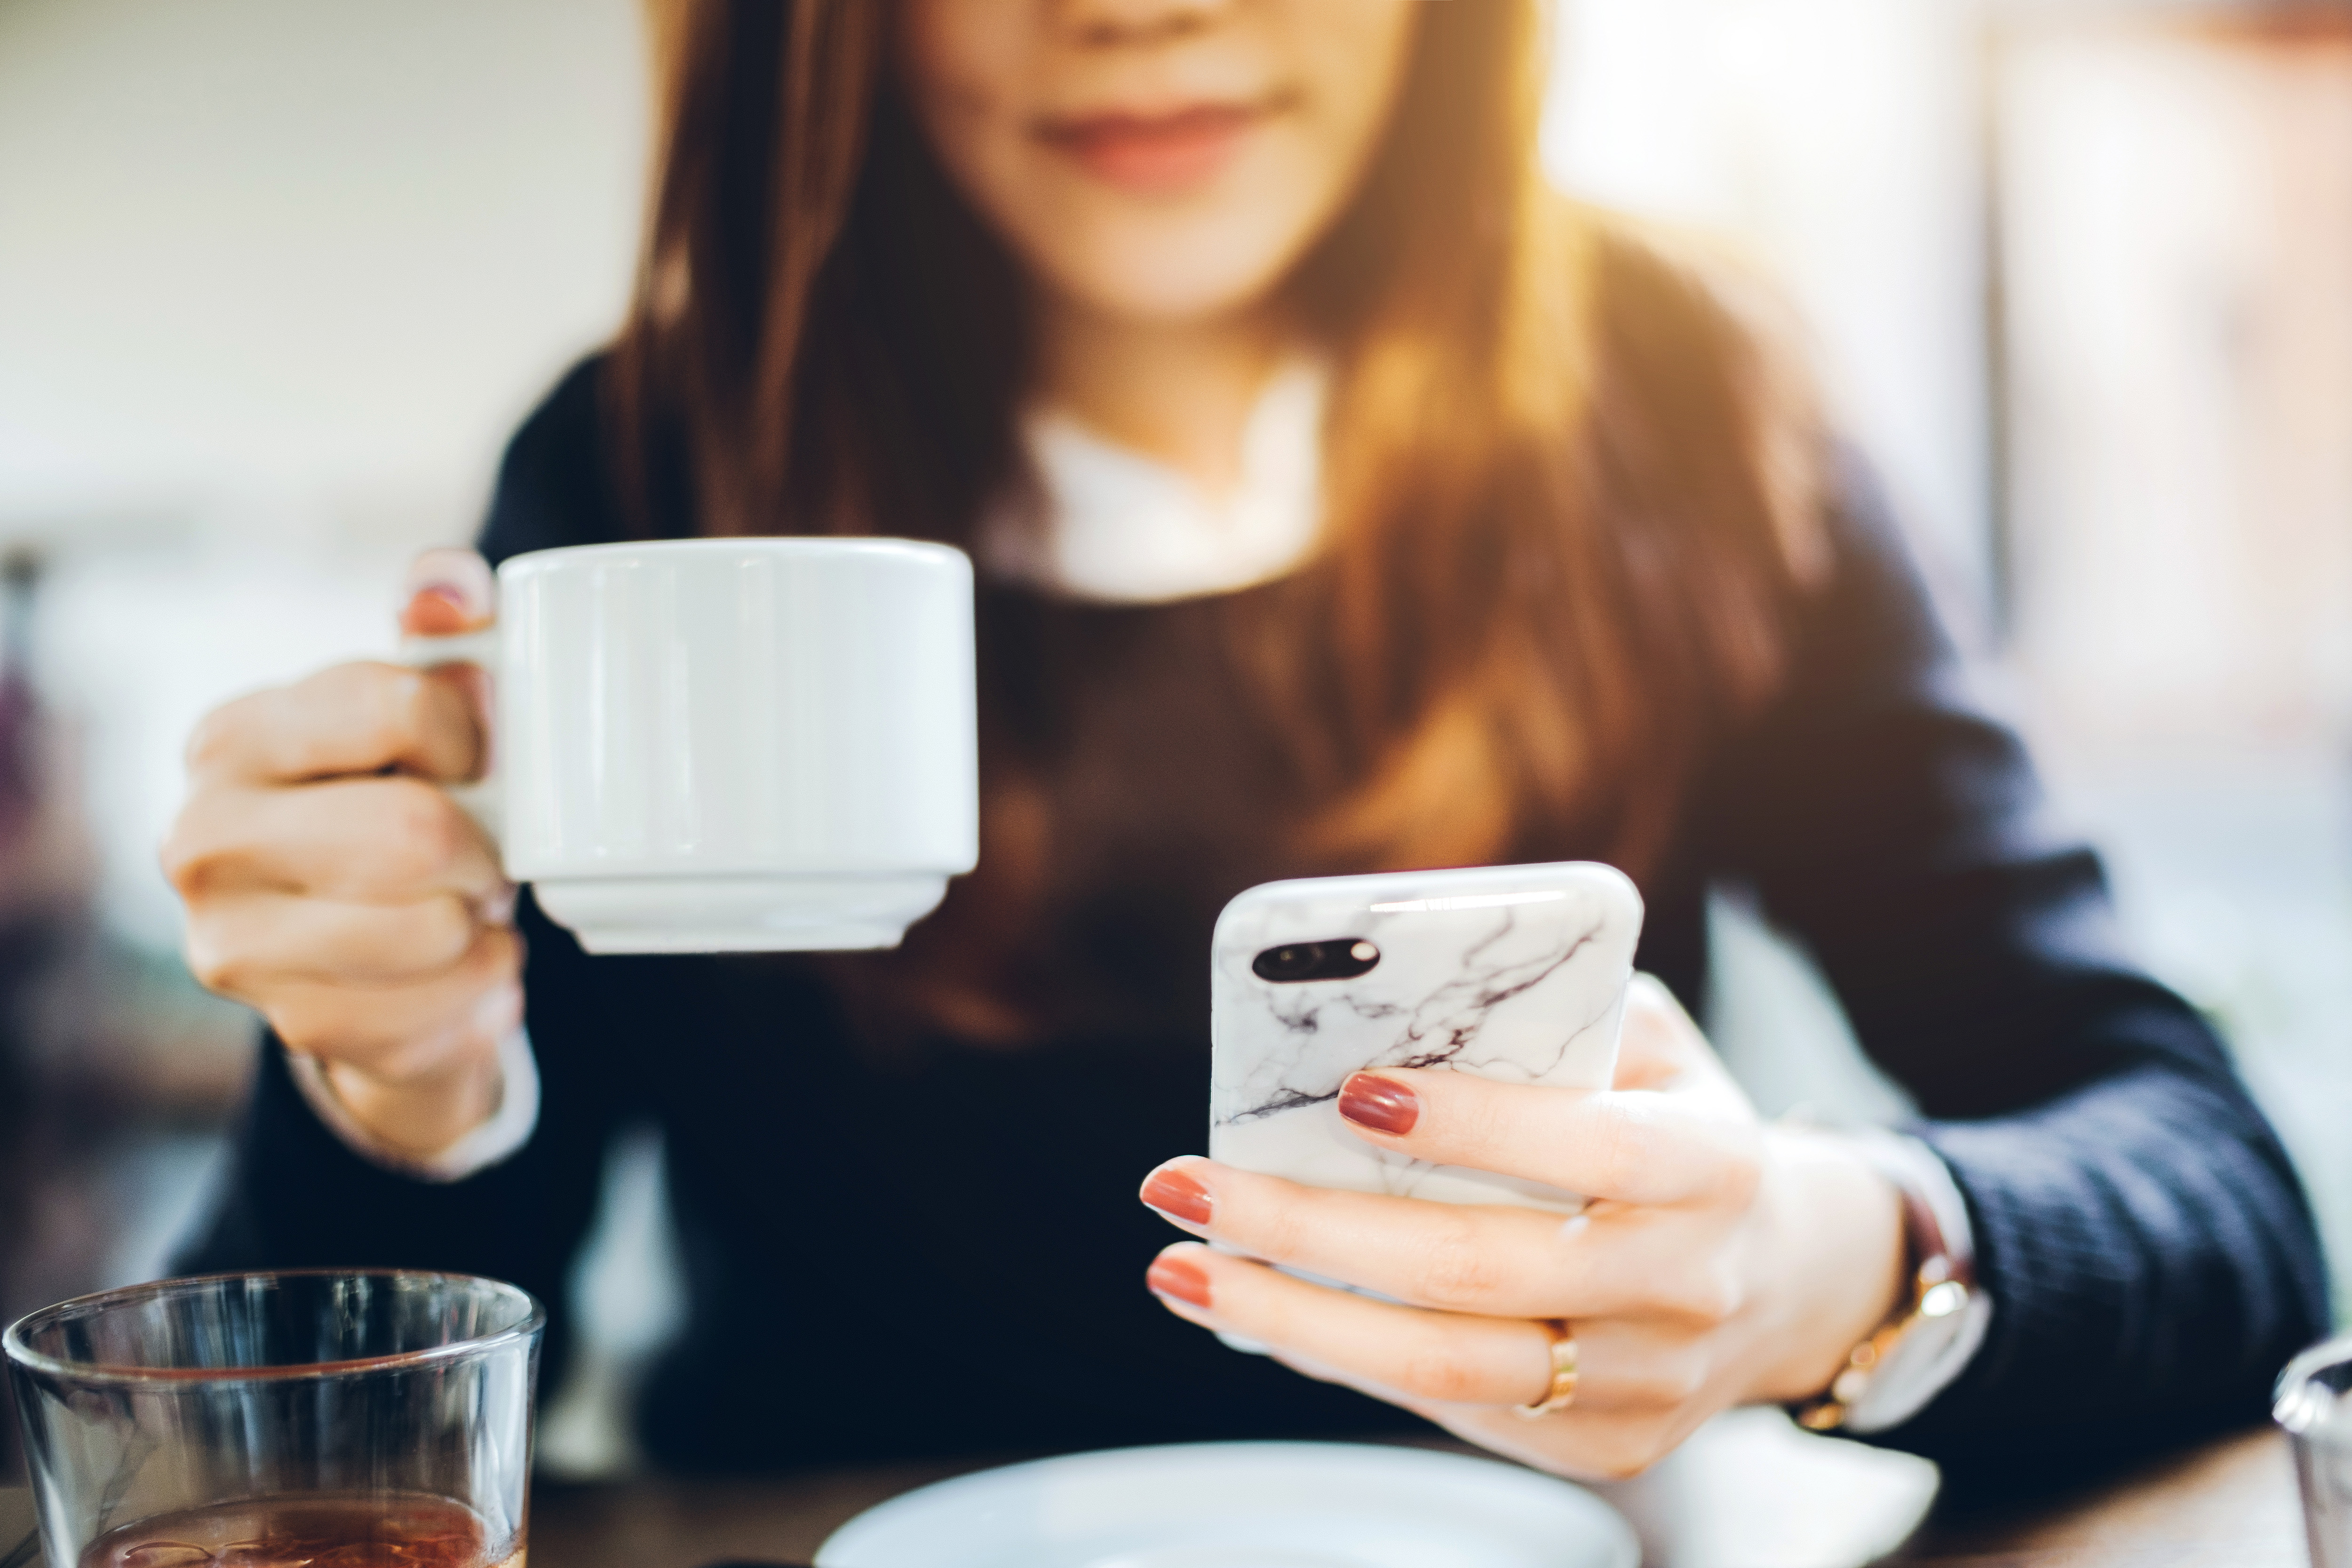 Woman Looking at Cell Phone Will Drinking Coffee